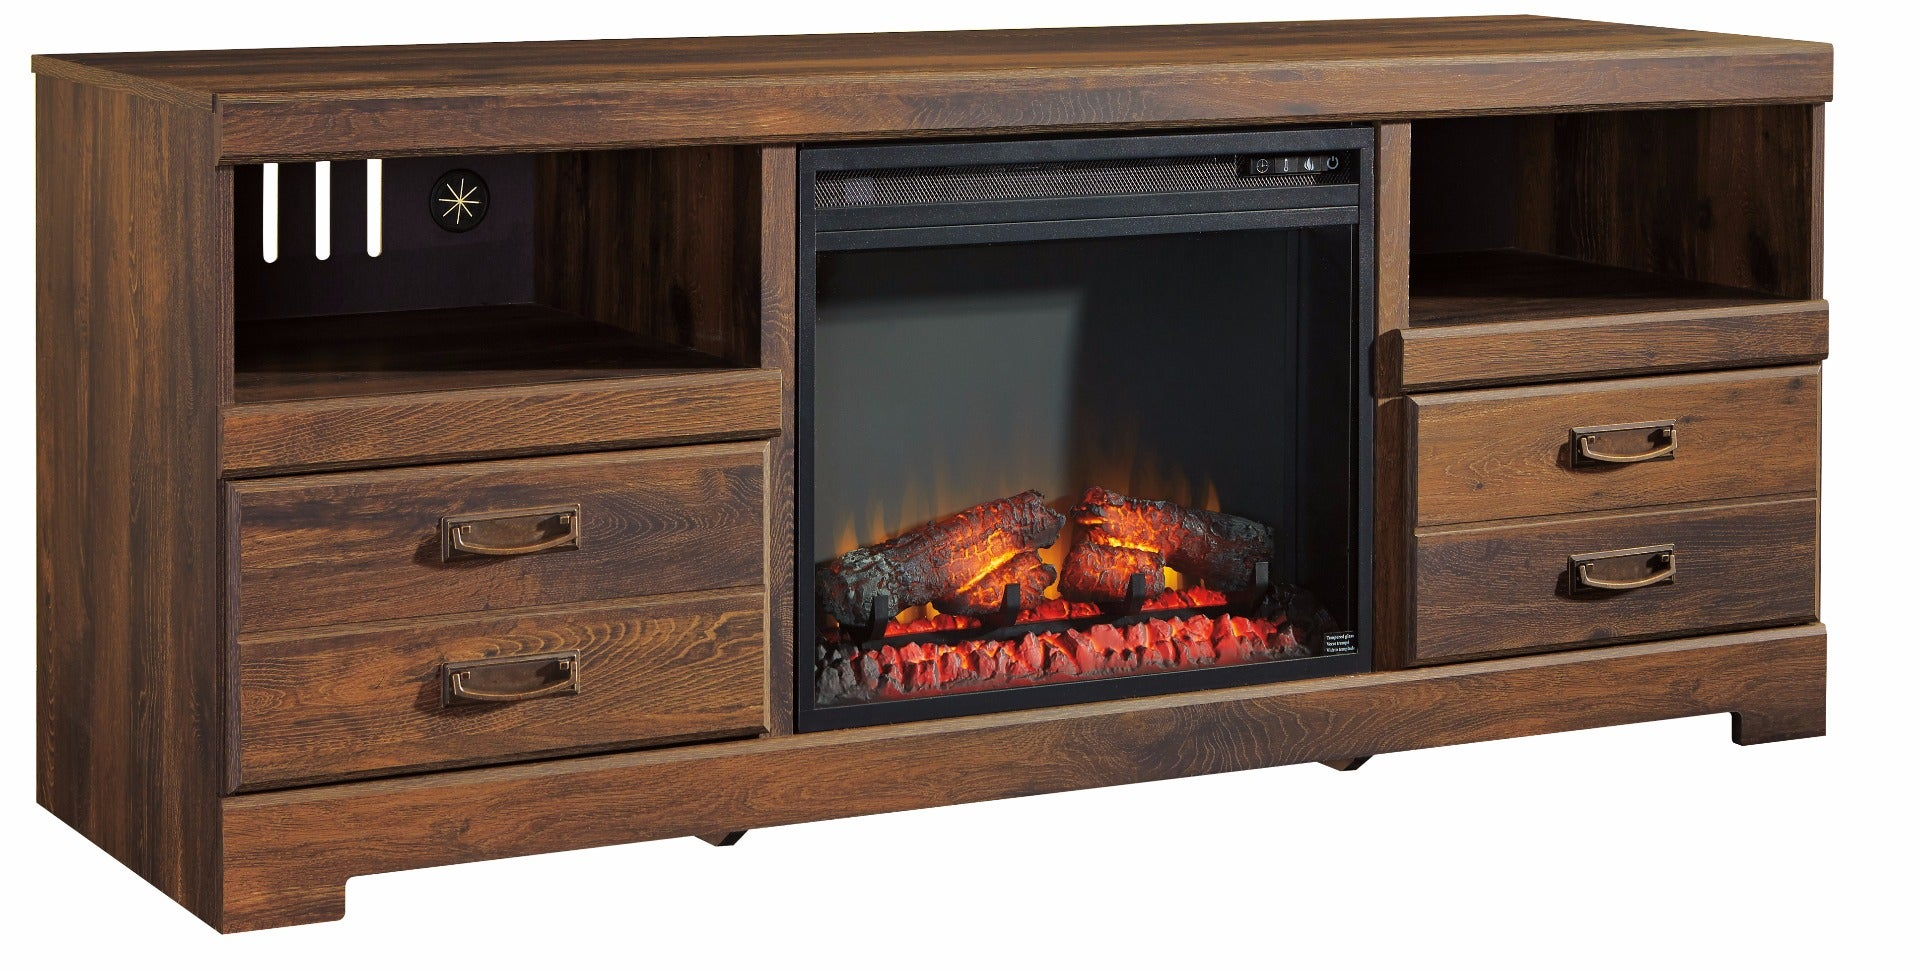 Quinden 64in Media Fireplace